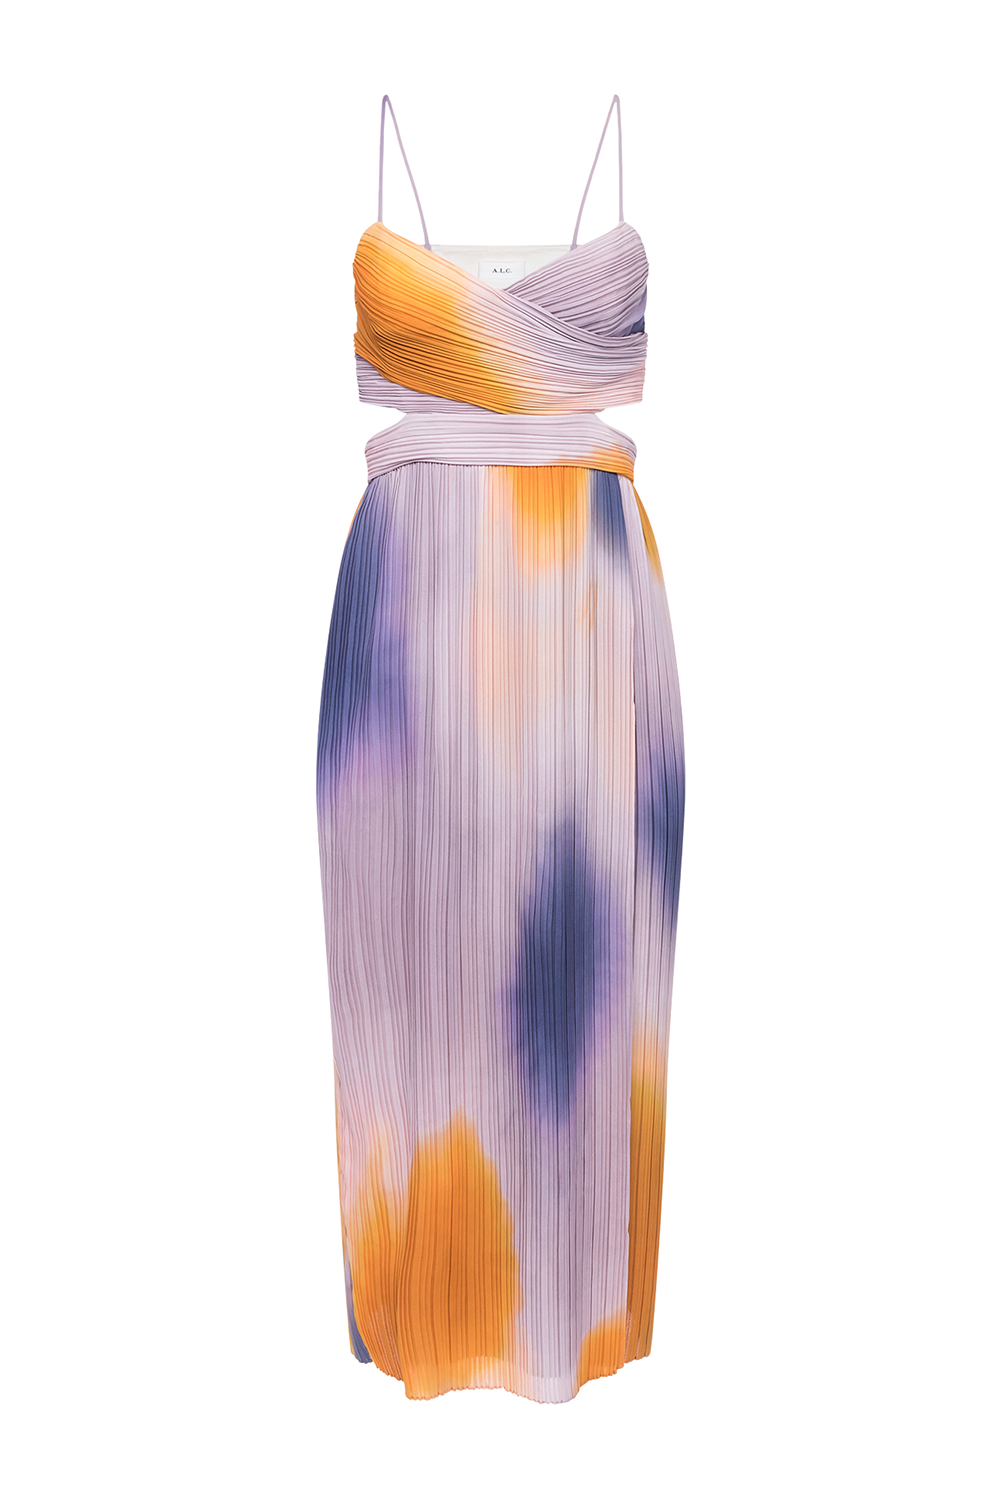 Most On-Trend Tie-Dye Crepe Dress A.L.C. shopbop.com $695.00 SHOP IT Love this feminine spring 2019 spin on tie-dye. The pleated, crepe number from A.L.C..